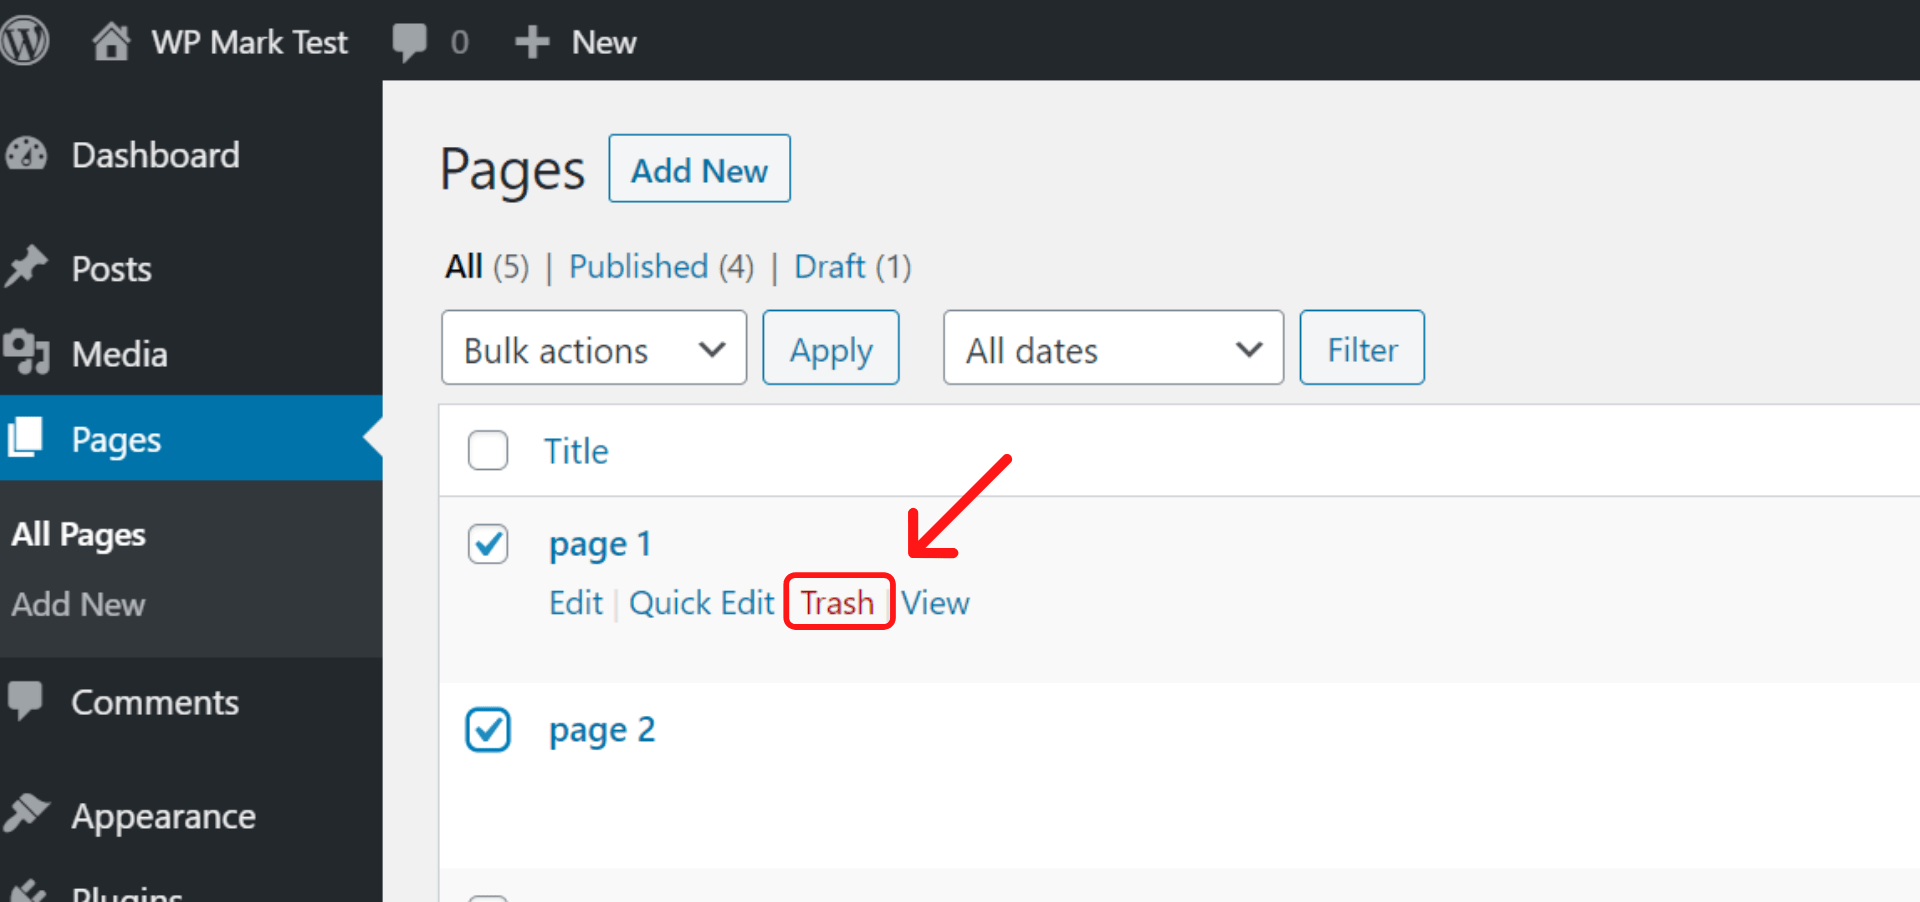 How to Delete Pages On WordPress